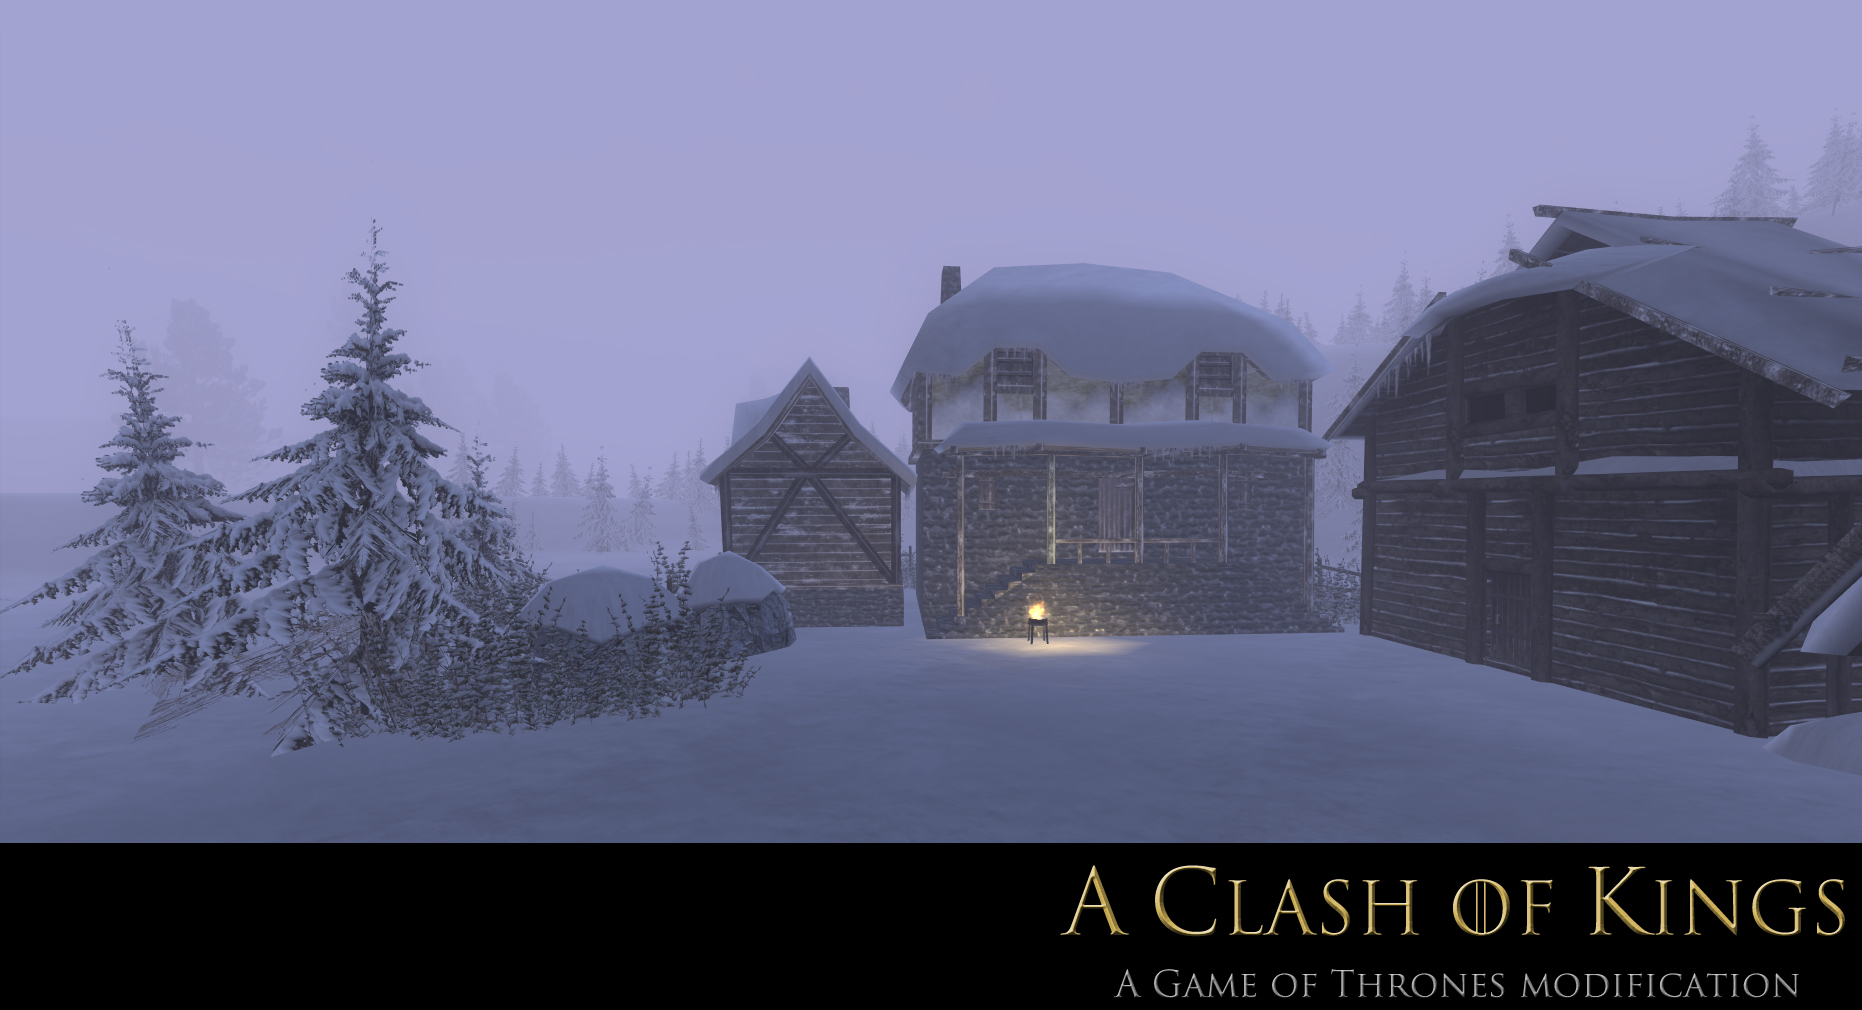 Castle Black 1 Image A Clash Of Kings Game Of Thrones Mod For